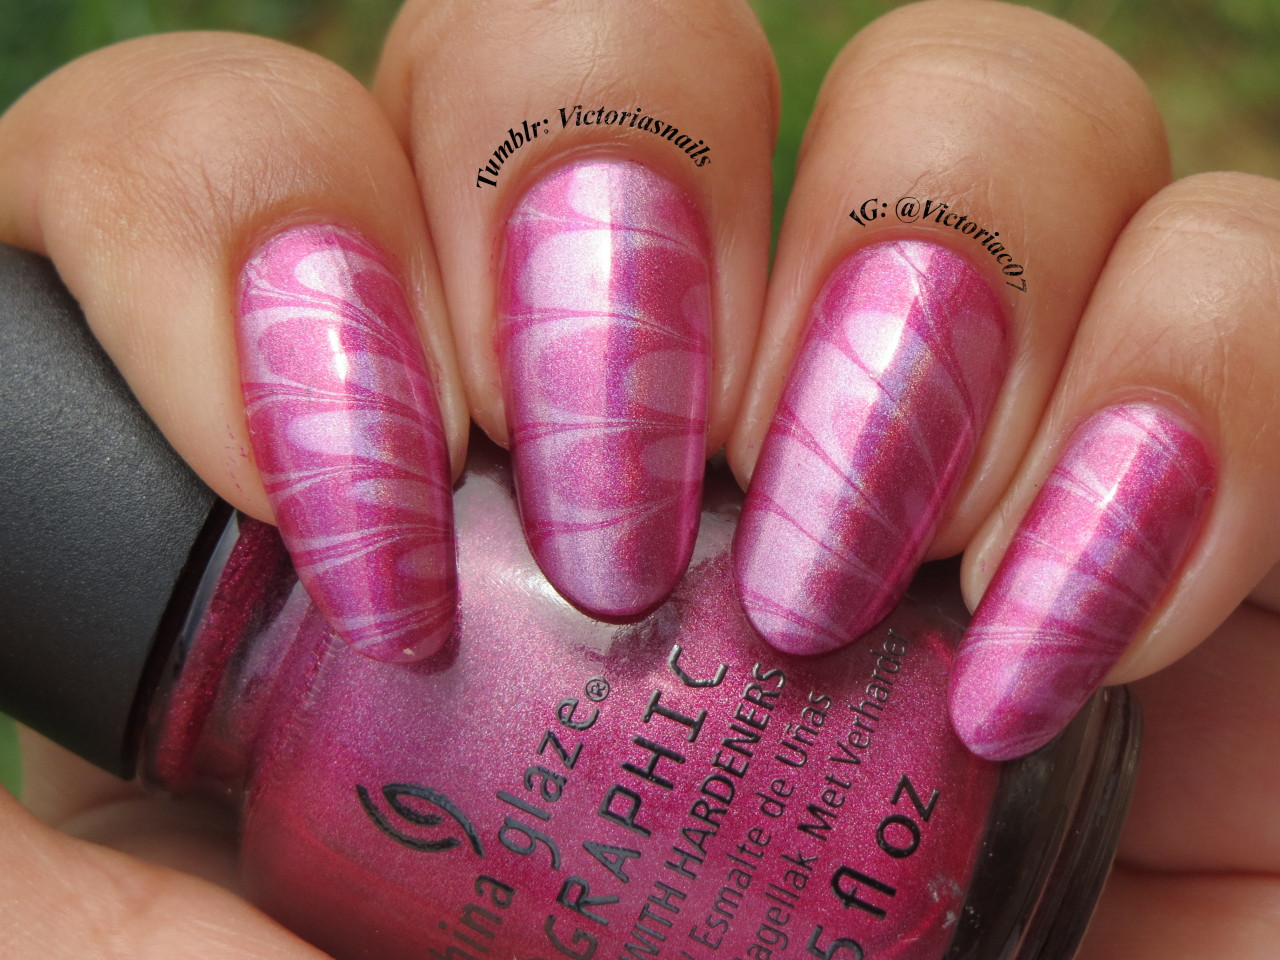 I absolutely had to water marble with my new China Glaze Hologlam polishes! This is outdoors, kinda cloudy so not much holo effect, but pretty nonetheless.